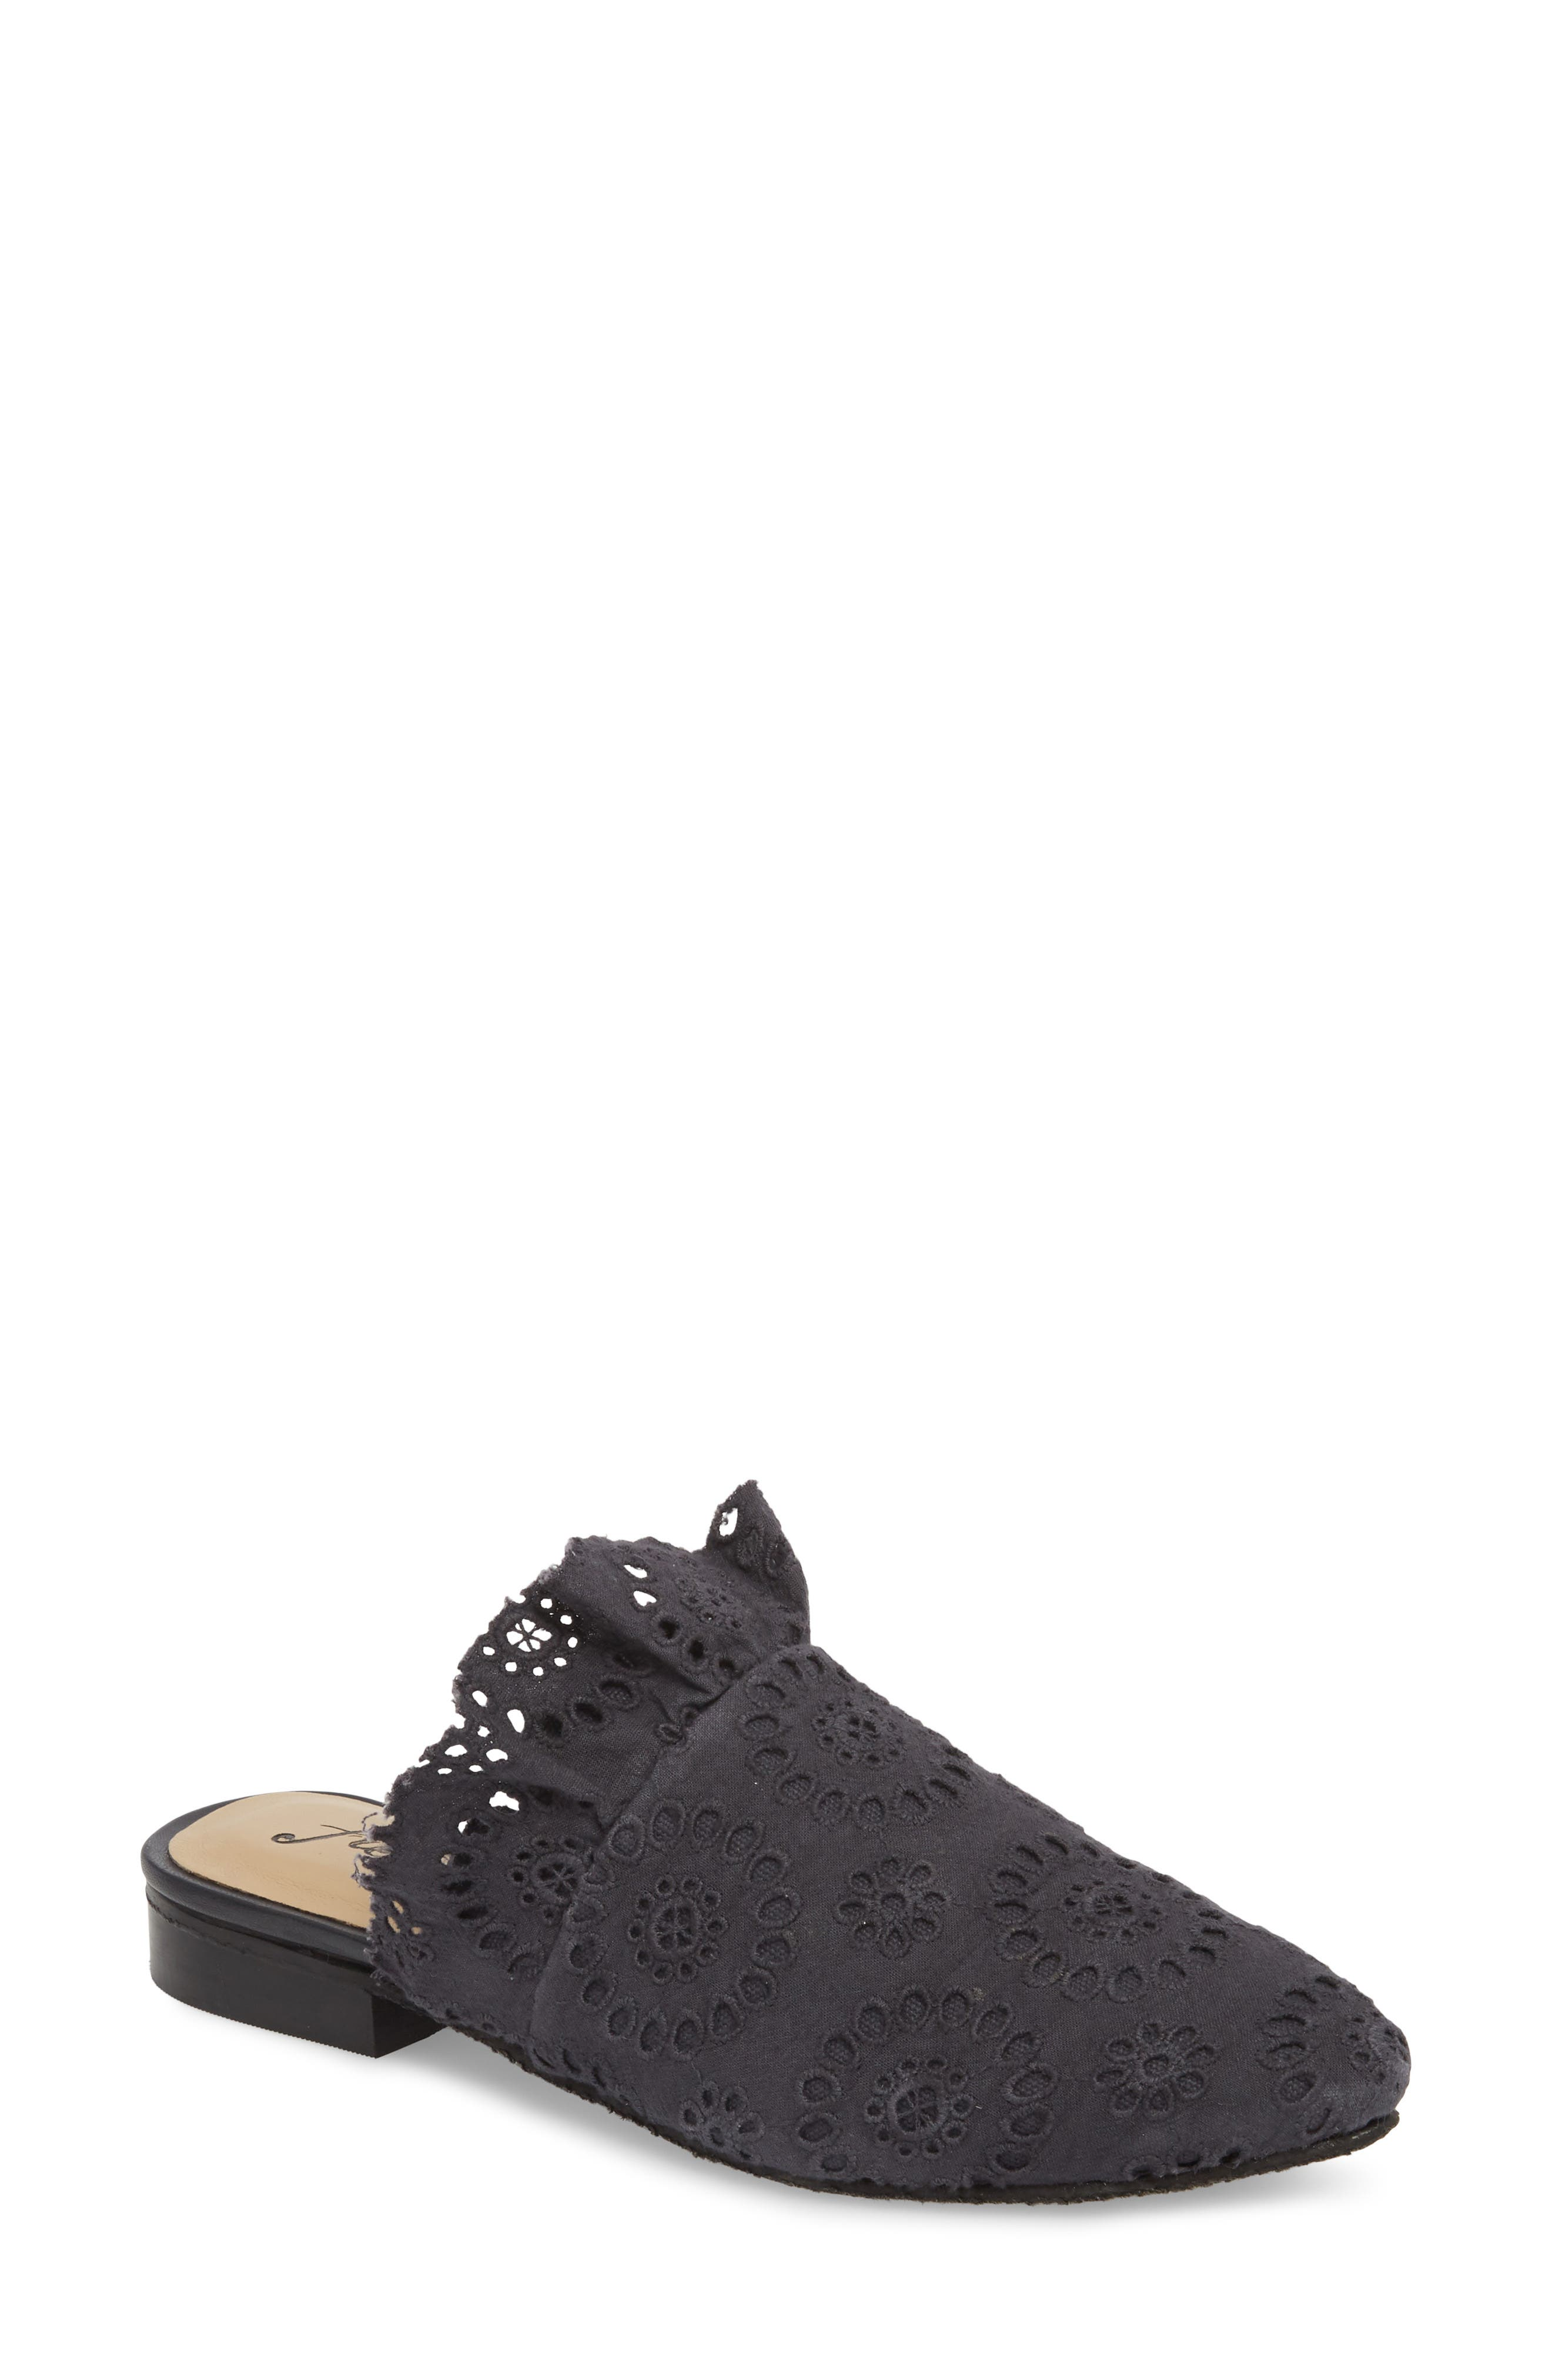 Eyelet Sienna Mule,                         Main,                         color, BLACK